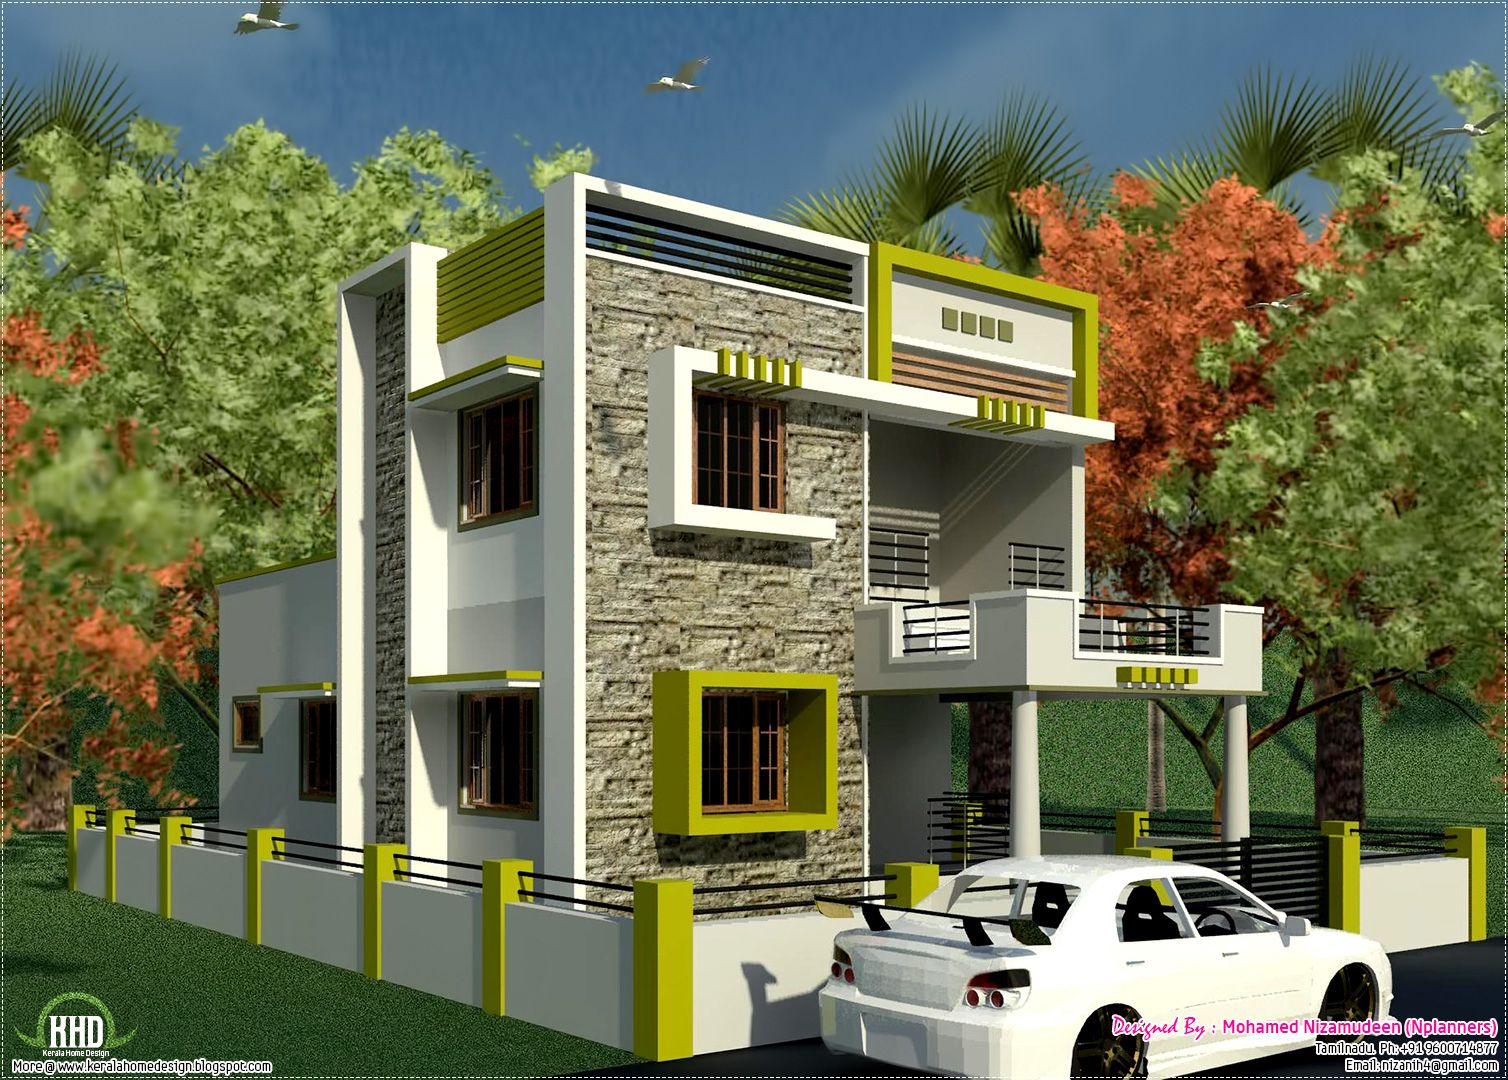 Small house with car park design tobfav com ideas for for House design outside view